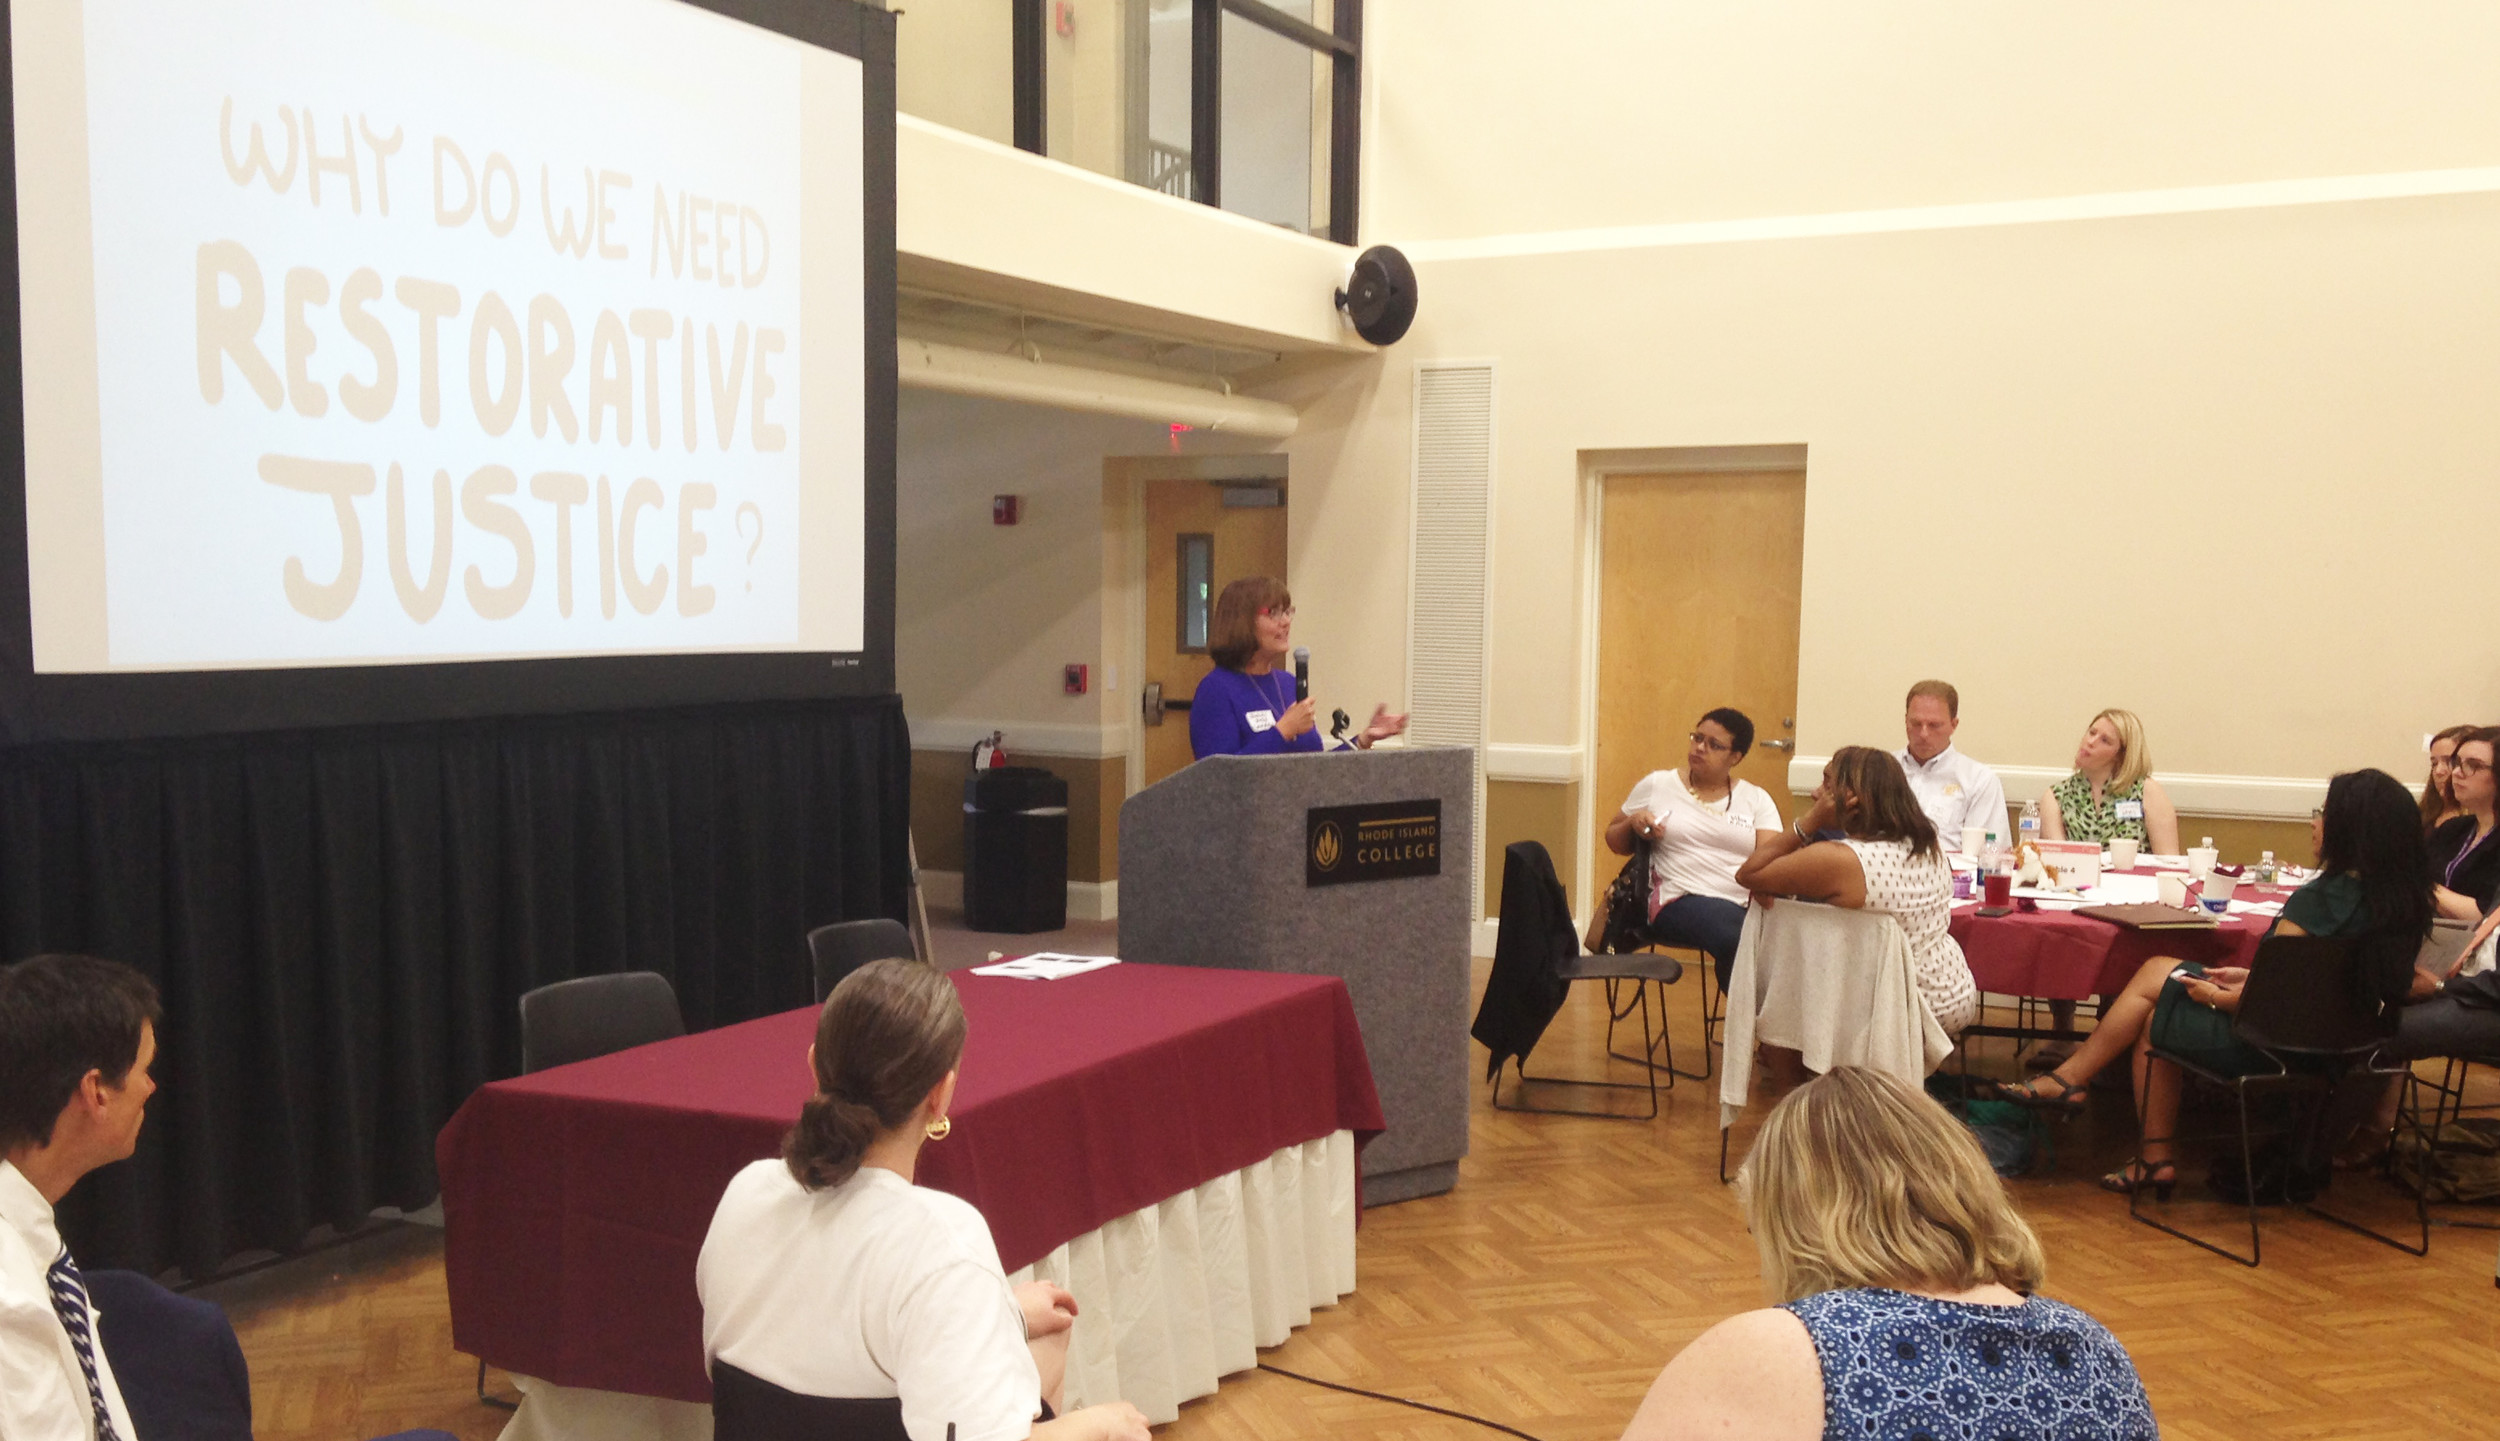 Retired Superior Court Judge Judith Savage addresses the 2017 Restorative Practices/Restorative Justice symposium at Rhode Island College on May 18.